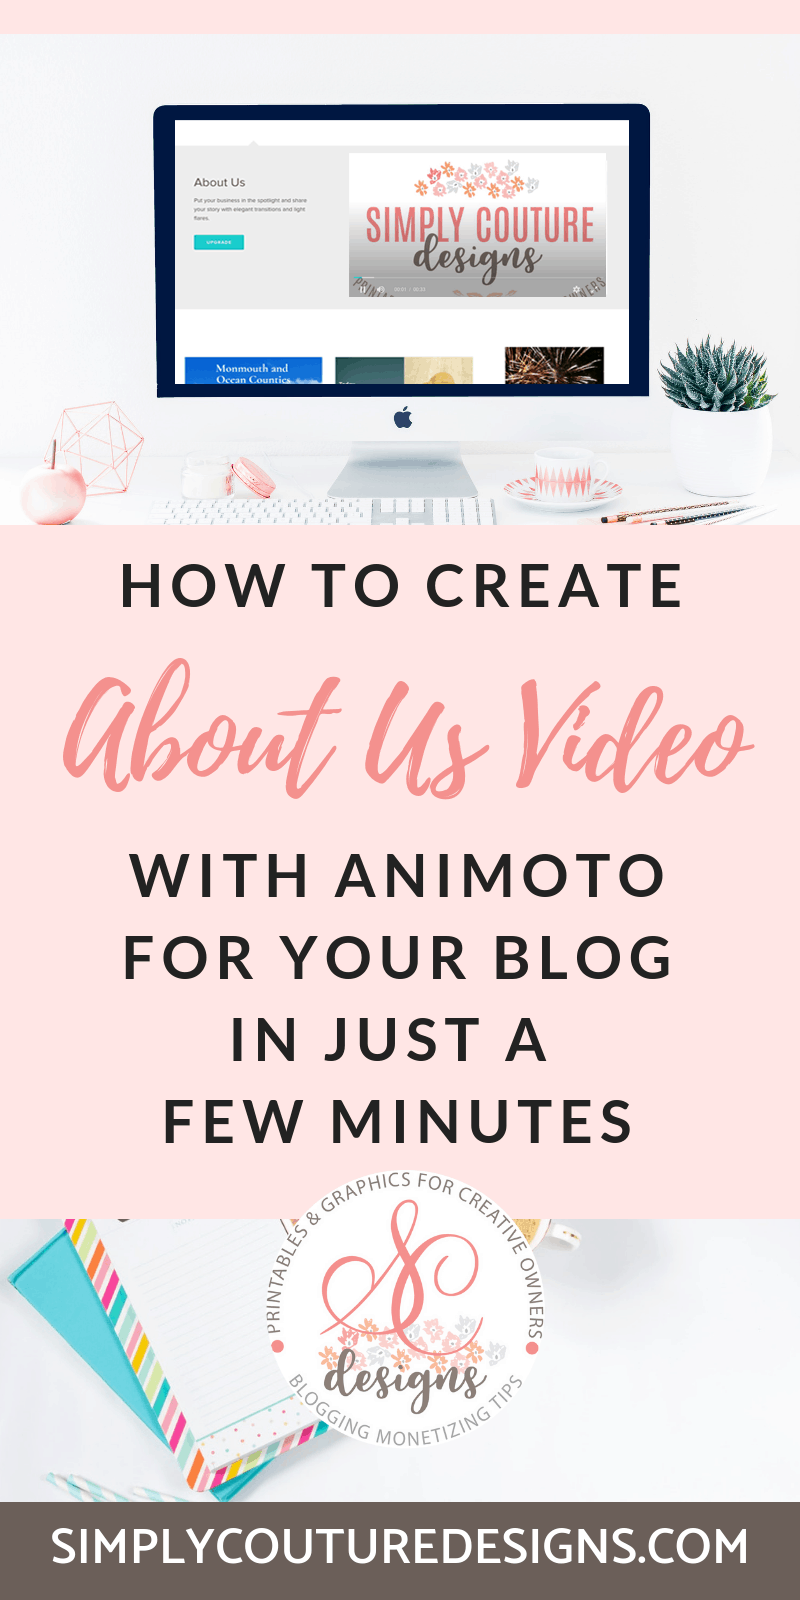 Create About Us video with Animoto.Put your business in the spotlight and share your story with elegant transitions and light flares with Animotos pre-built storyboard